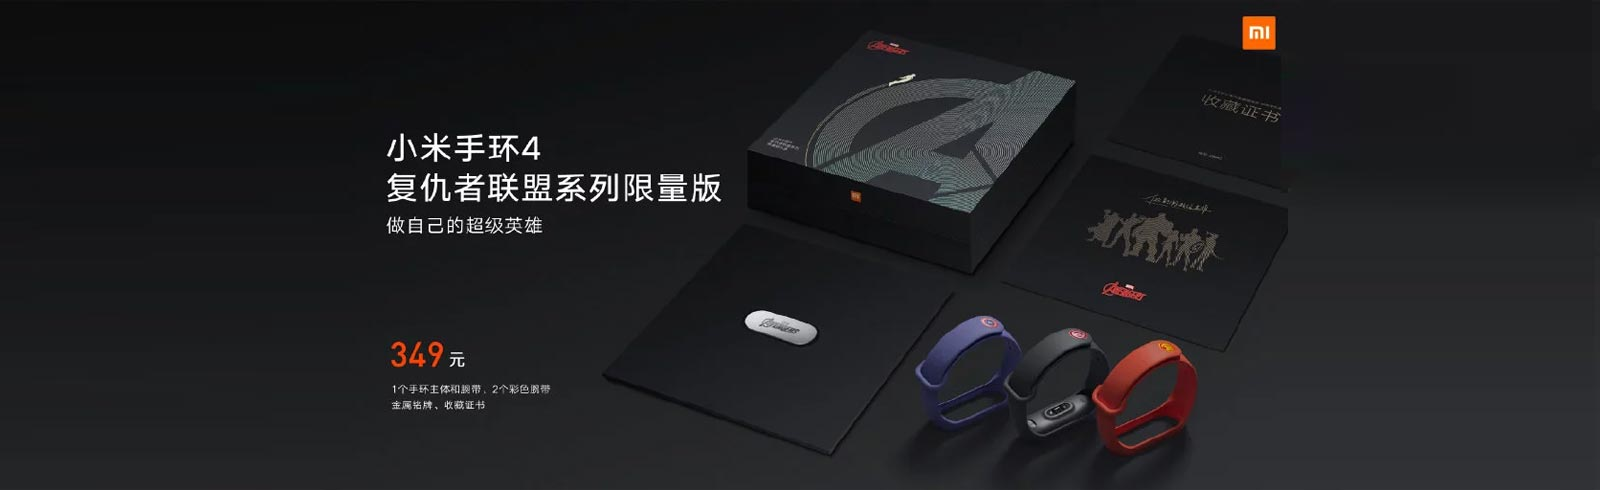 Xiaomi Mi Band 4 is official, sports a colour AMOLED screen